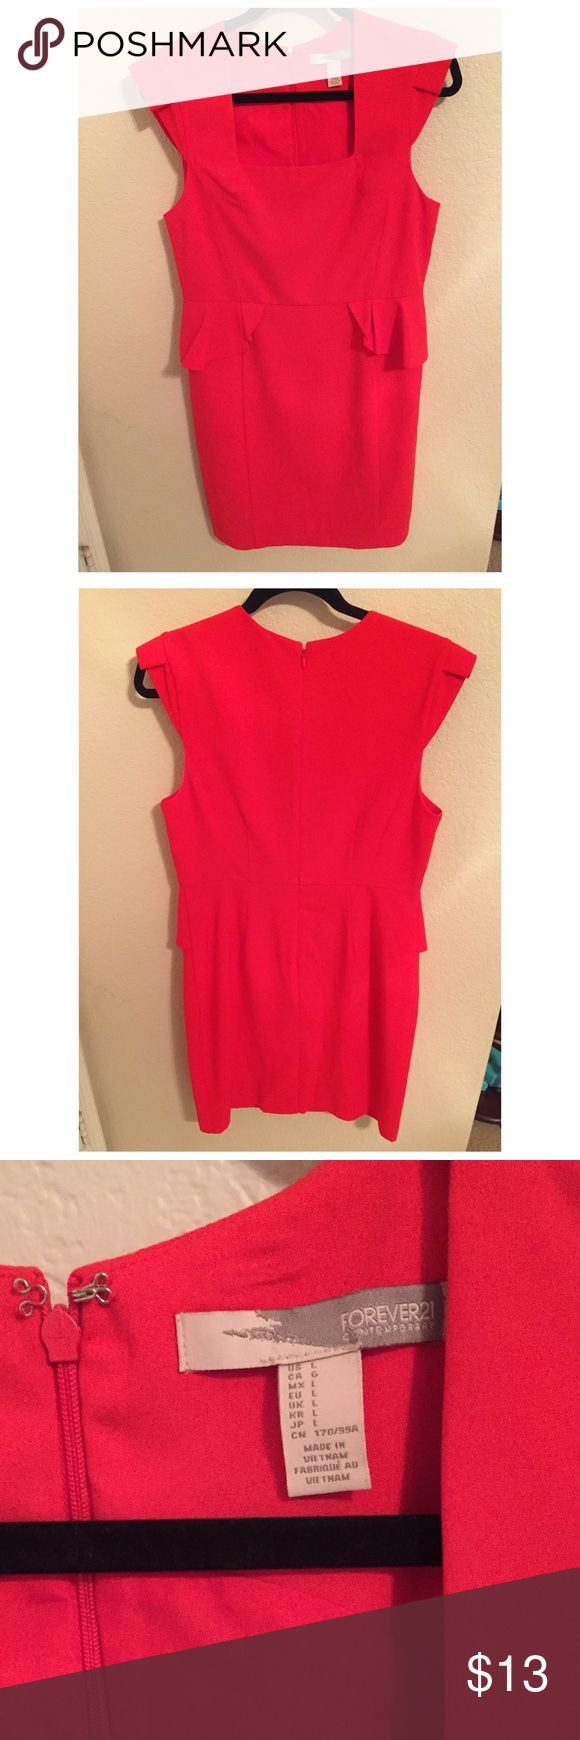 Red Peplum Dress in Size L Red Peplum Dress in size L. Brand New. Never been worn. Purchased wrong size online. Satin lining. Perfect condition. Beautiful dress for a professional & polished look. Forever 21 Dresses